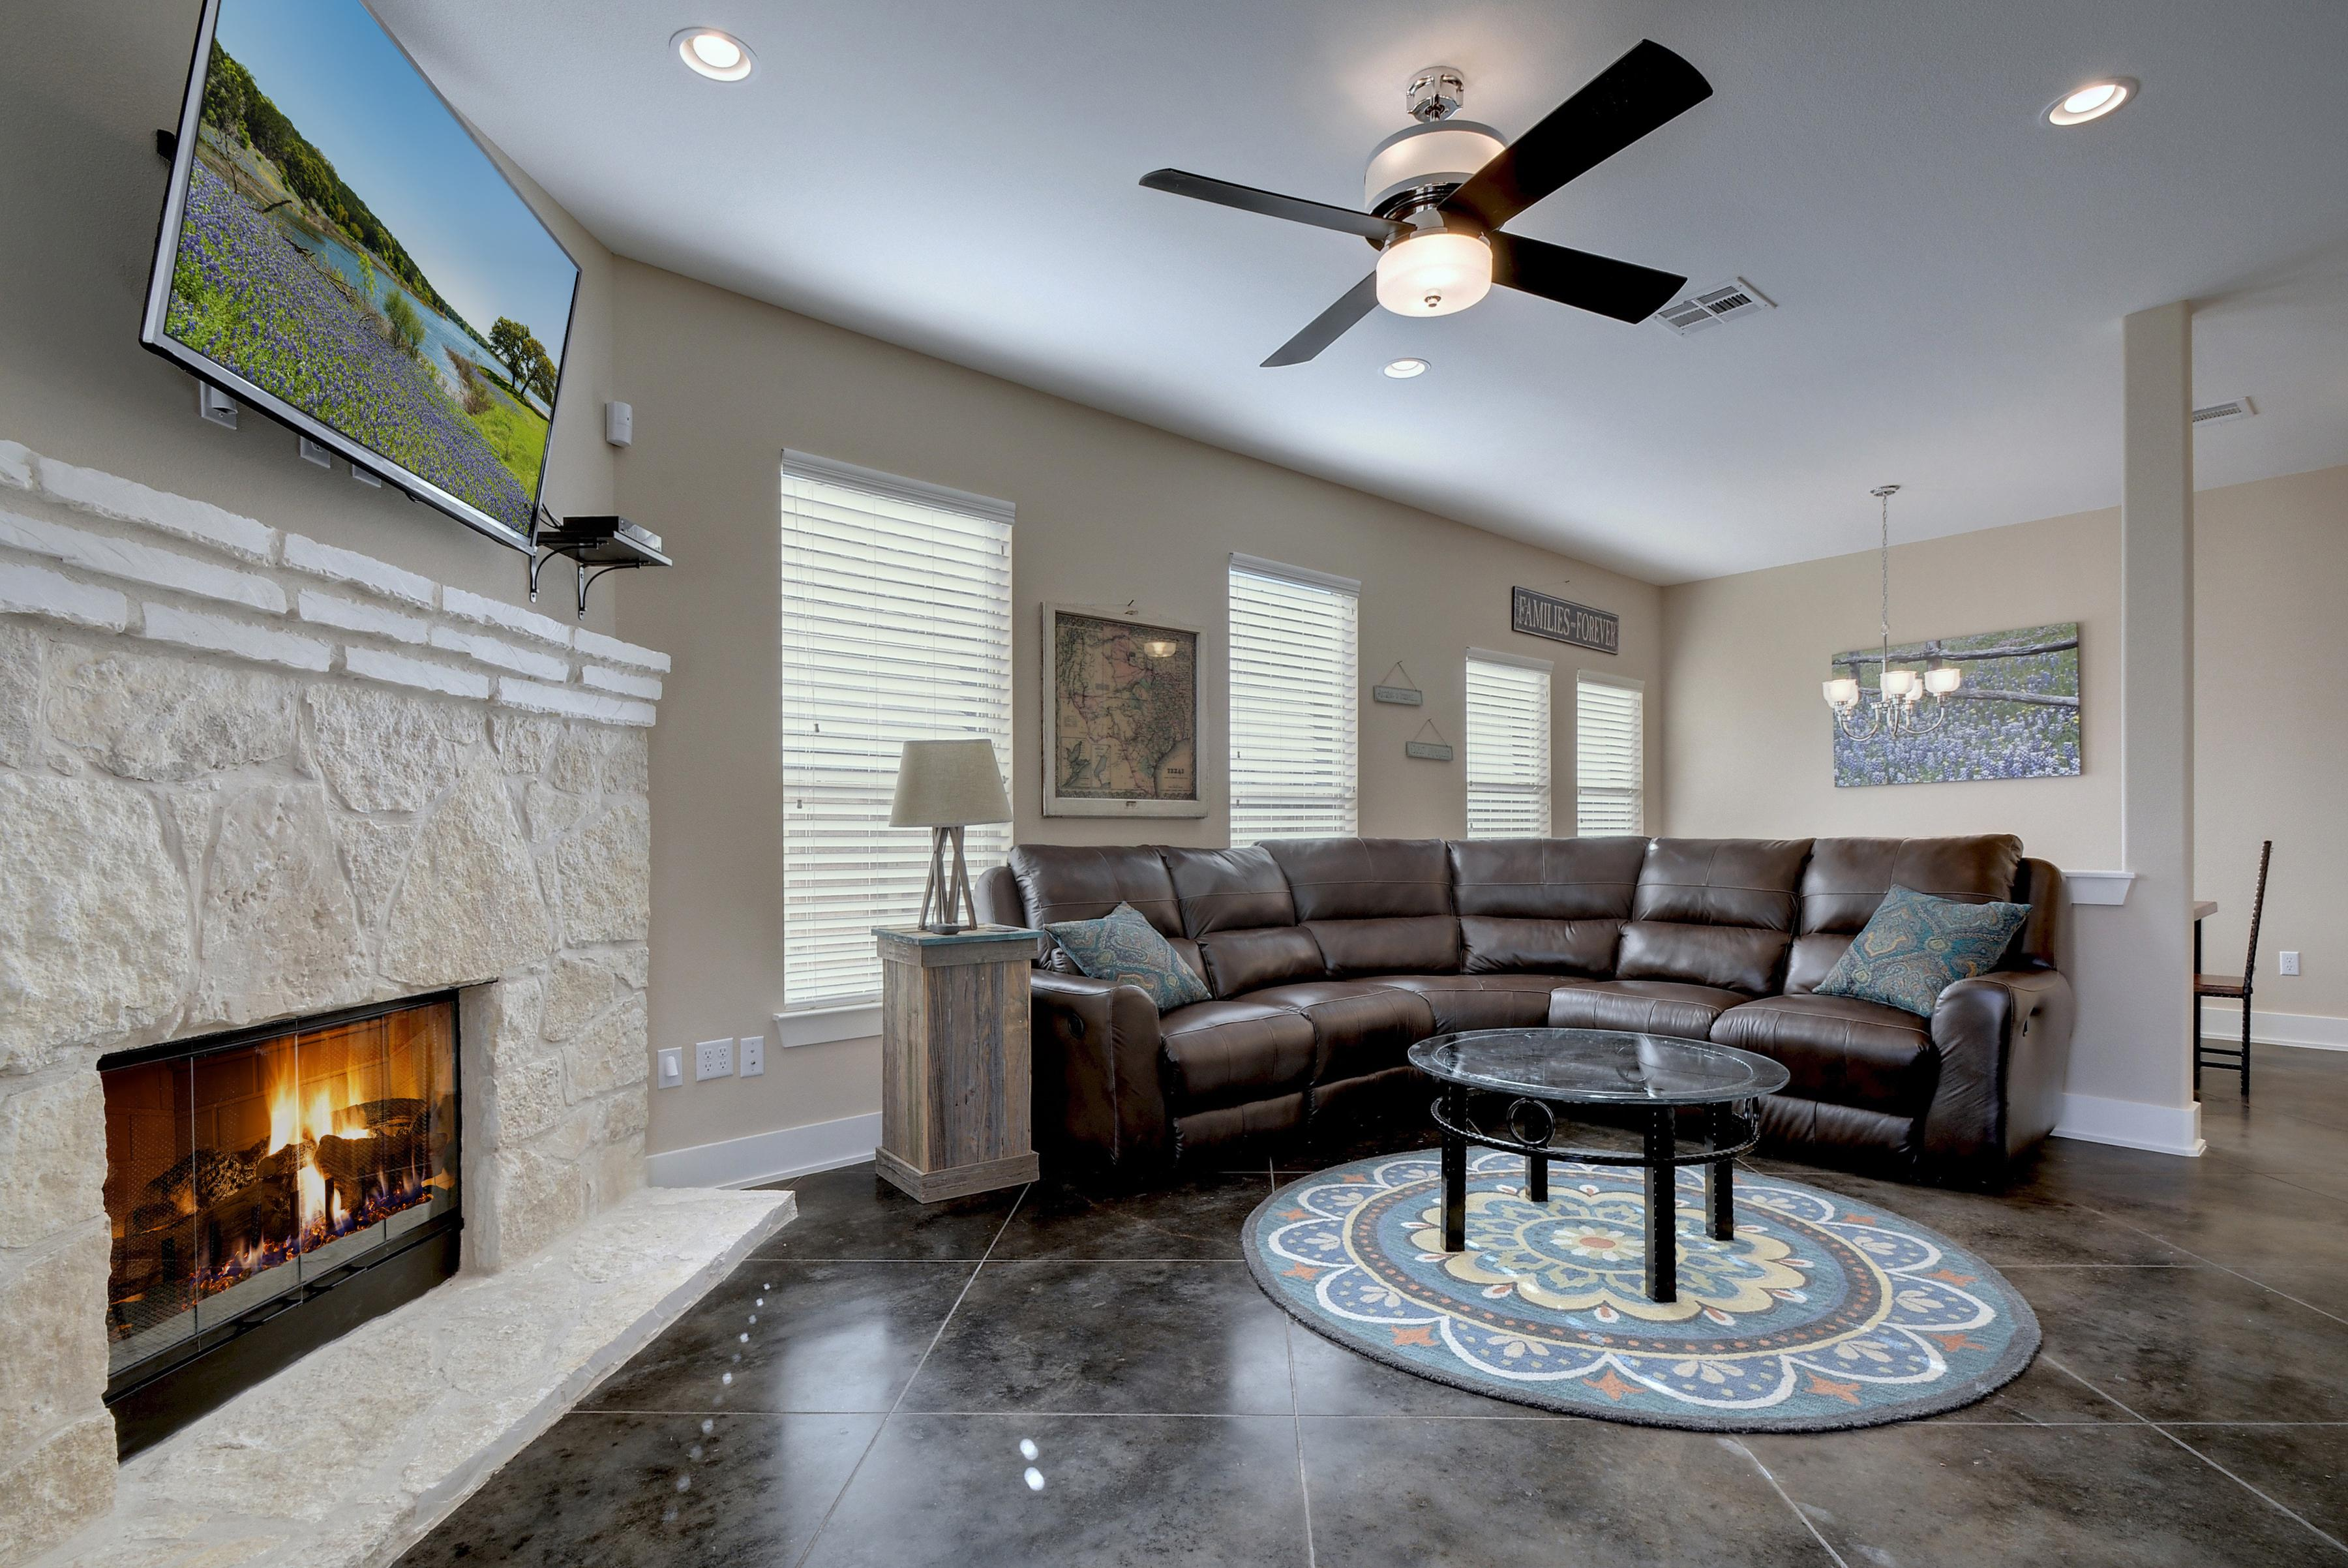 Welcome to Dripping Springs! In the main living area, a leather sofa with reclining ends creates the perfect setting to unwind.